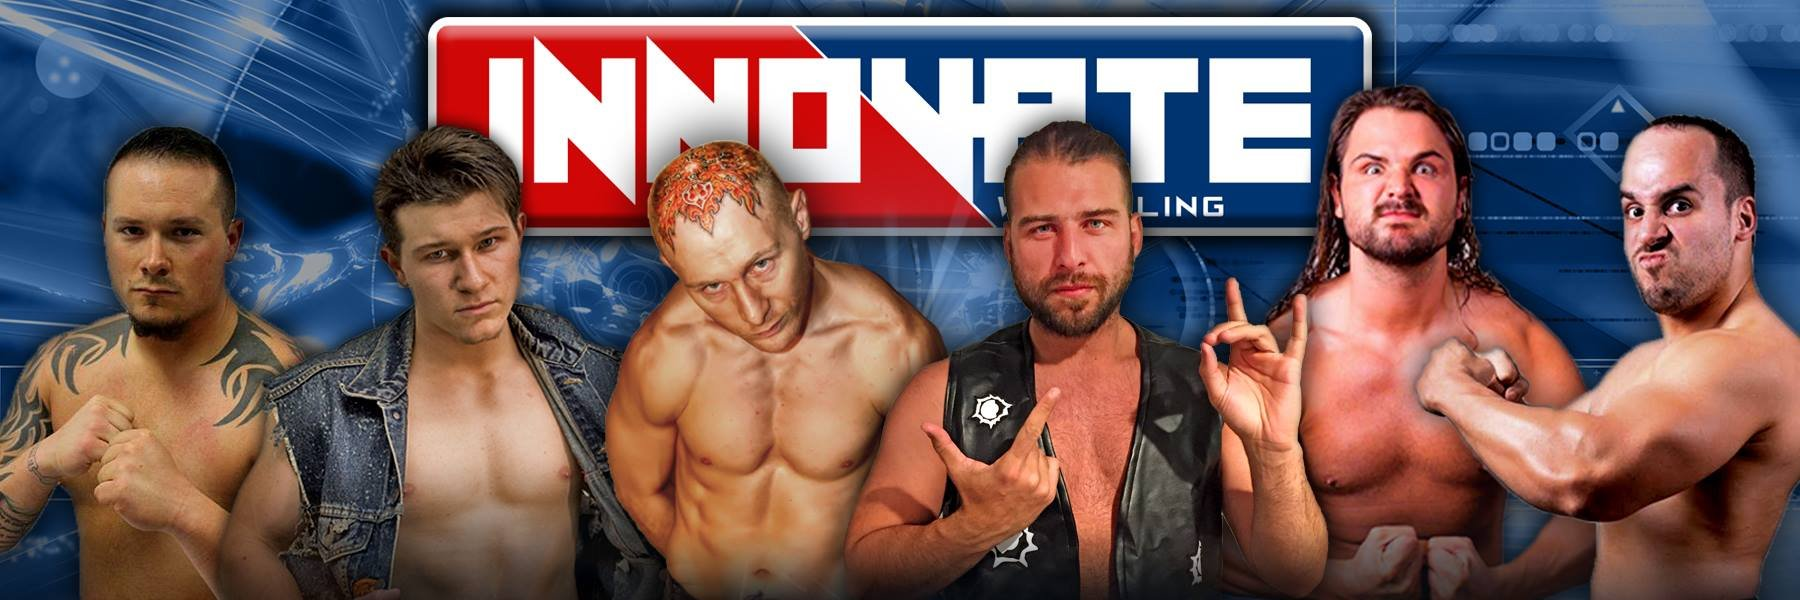 Innovate Wrestling On Demand